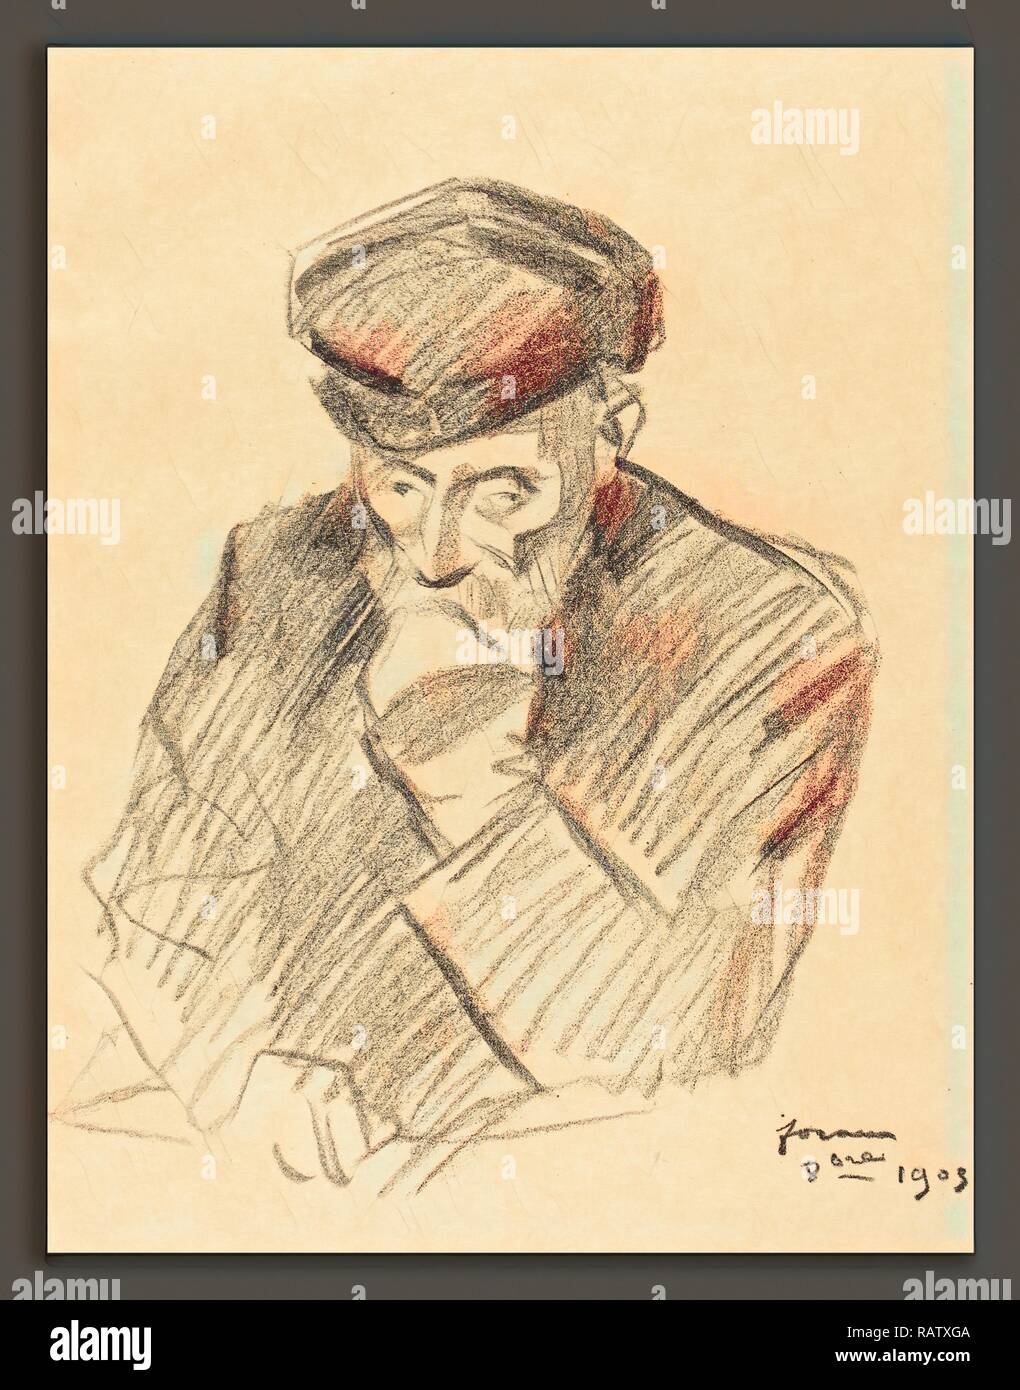 Jean-Louis Forain, Renoir (fourth plate), French, 1852 - 1931, 1905, transfer lithograph. Reimagined - Stock Image